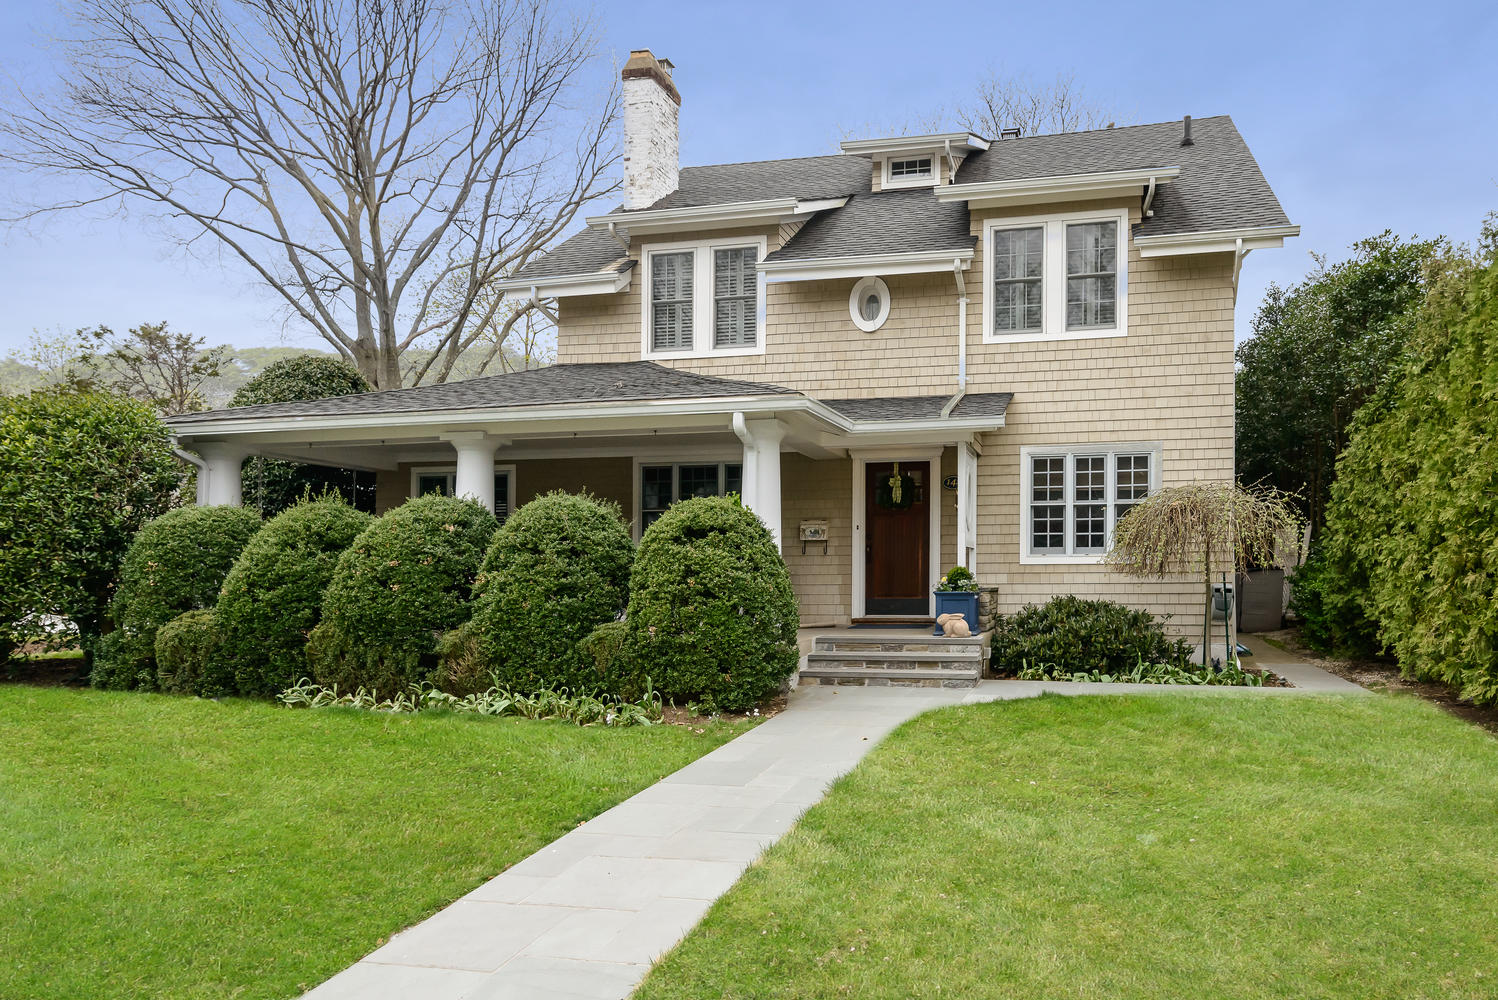 Single Family Home for Sale at Traditional 142 Brixton Rd Garden City, New York, 11530 United States